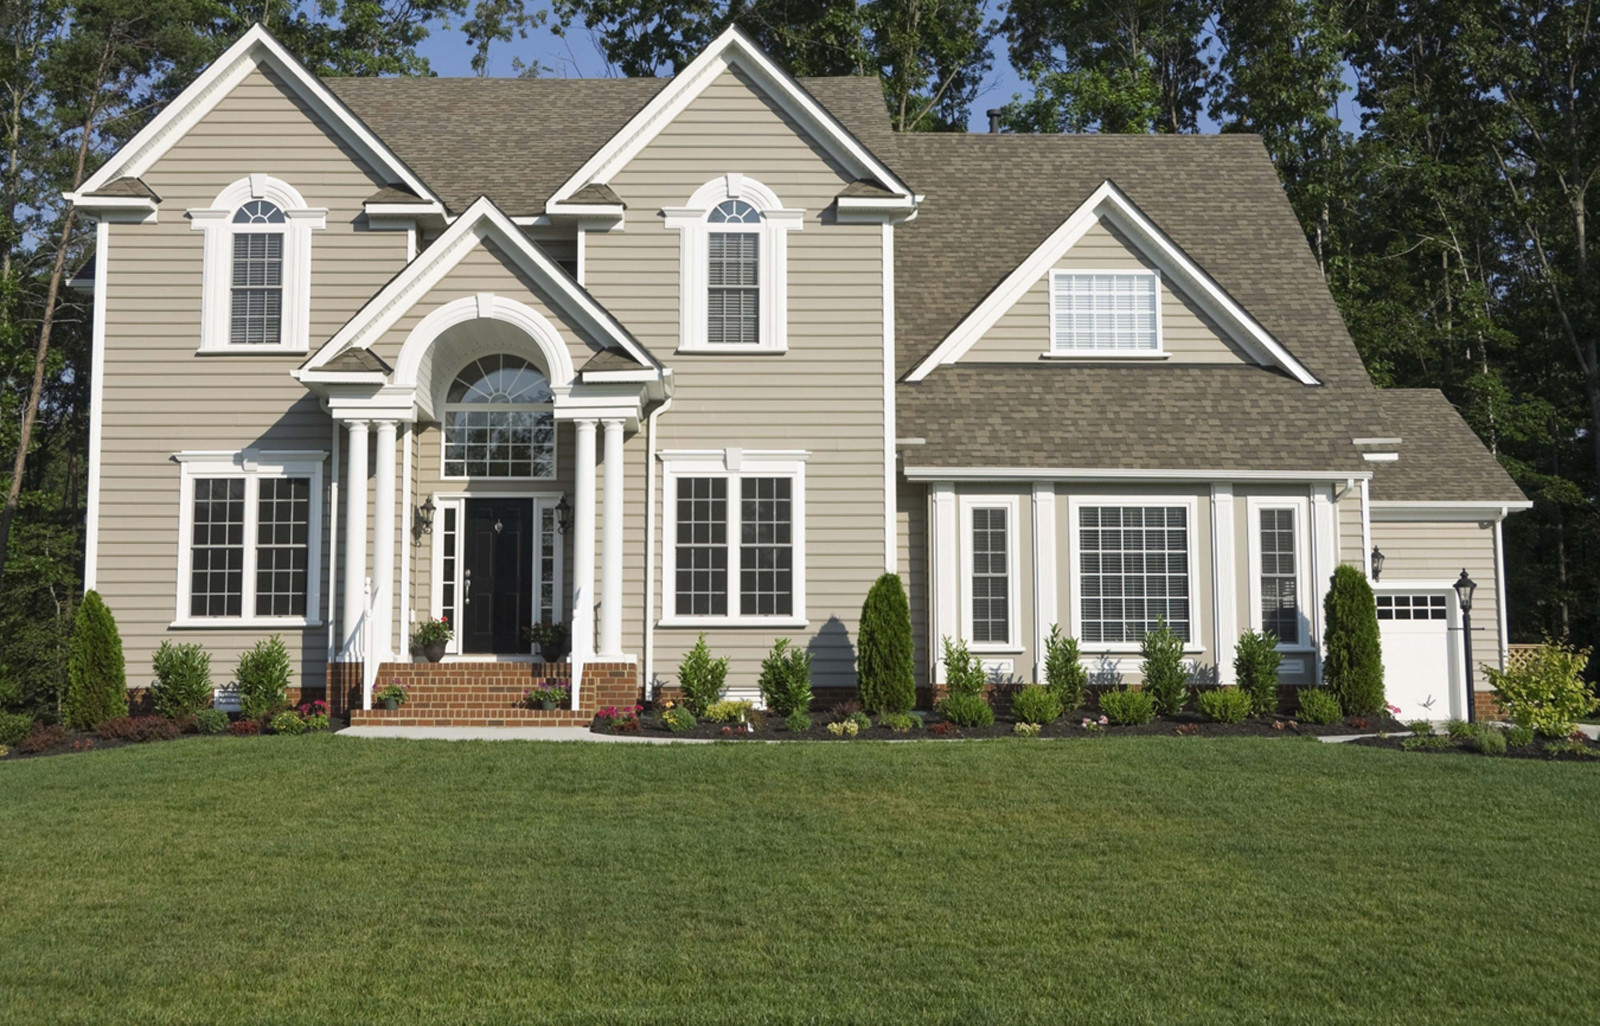 Best ideas about Exterior House Paint Colors Photo Gallery . Save or Pin Awesome Paint Colors Ideas for House Exterior Walls Now.